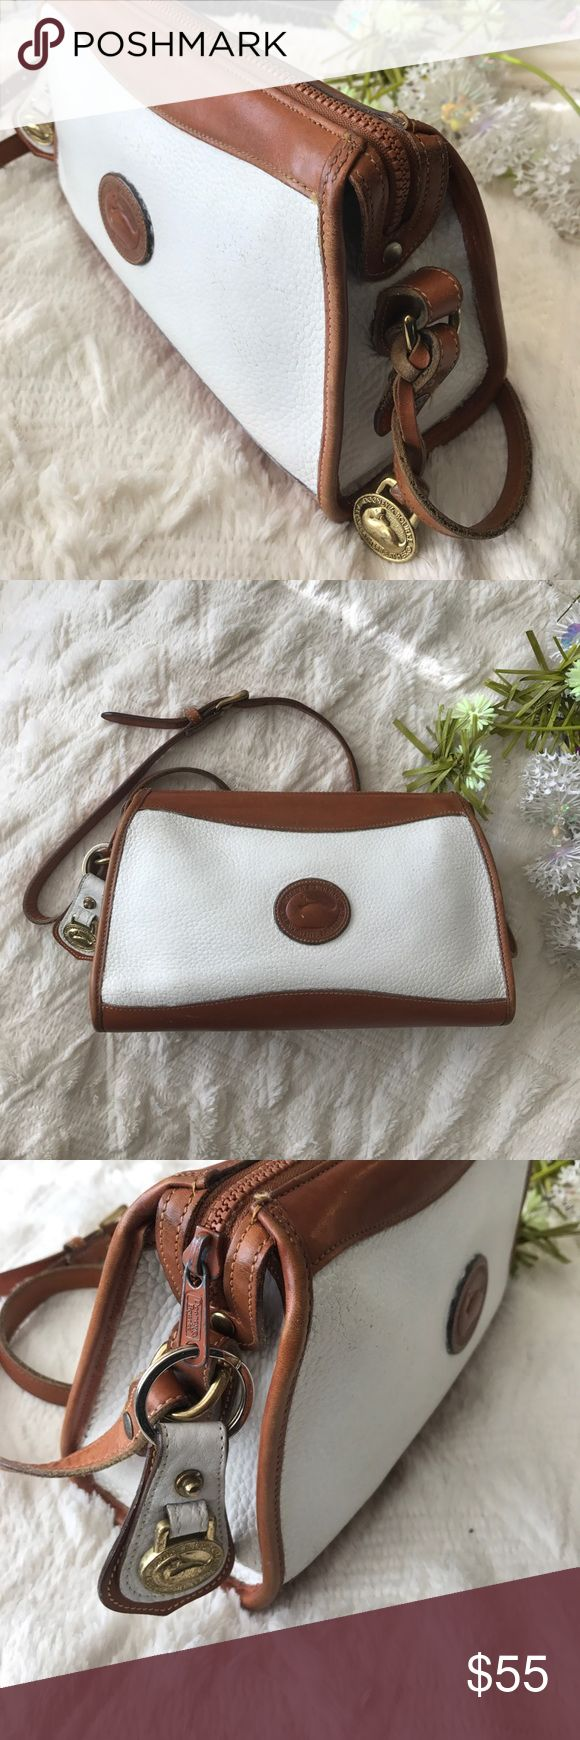 Vintage Dooney & Bourke Bag 💼 Vintage Dooney and Bourke. spacious medium sized bag with 4 inner pockets. Zippers closed for extra security Dooney & Bourke Bags Crossbody Bags